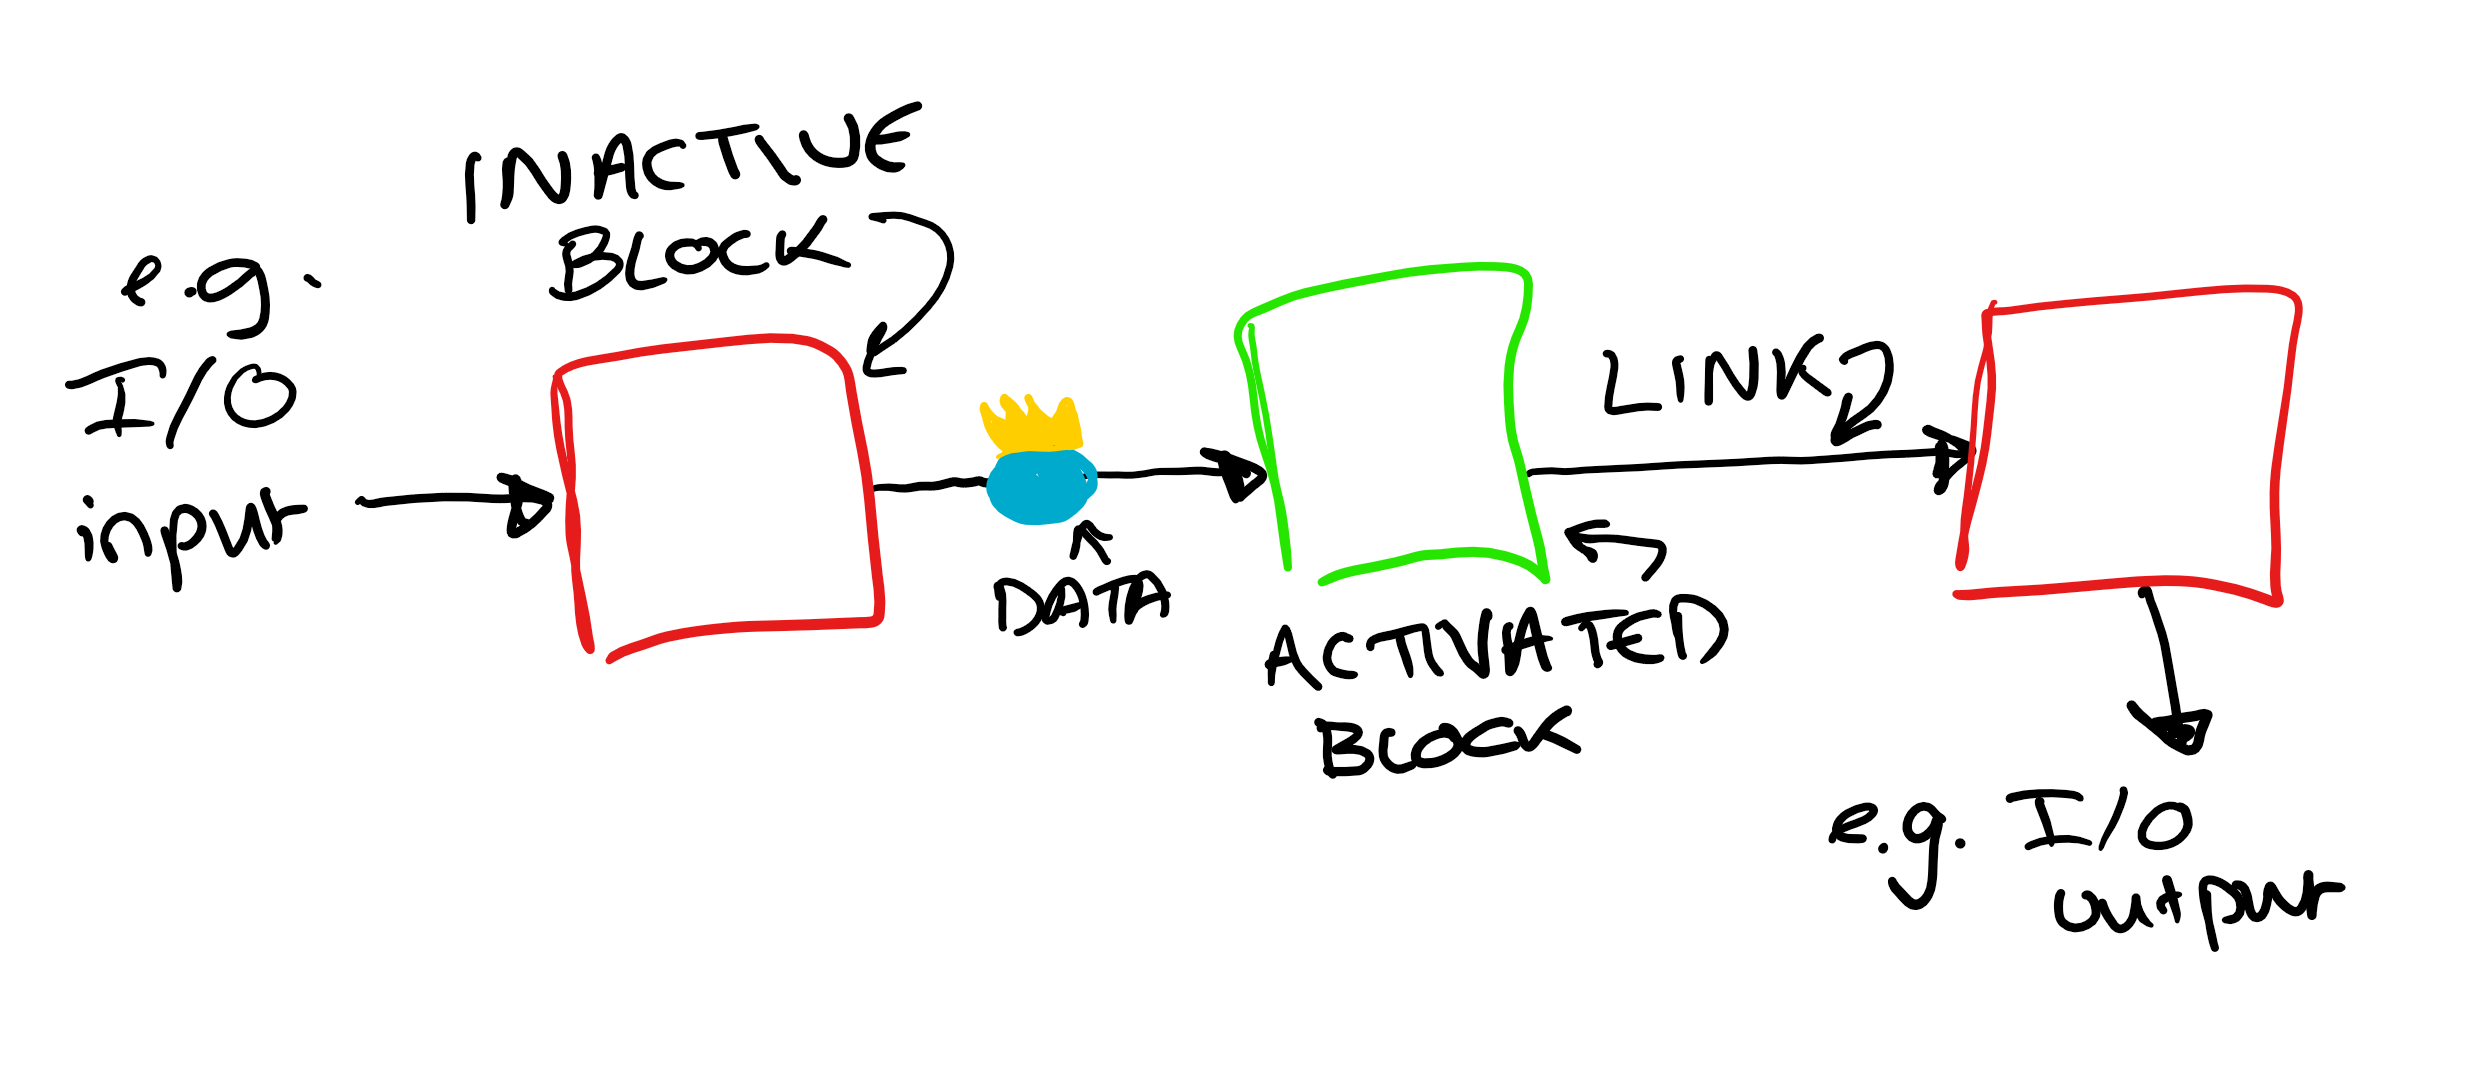 Diagram of inactive/active blocks in a data flow.